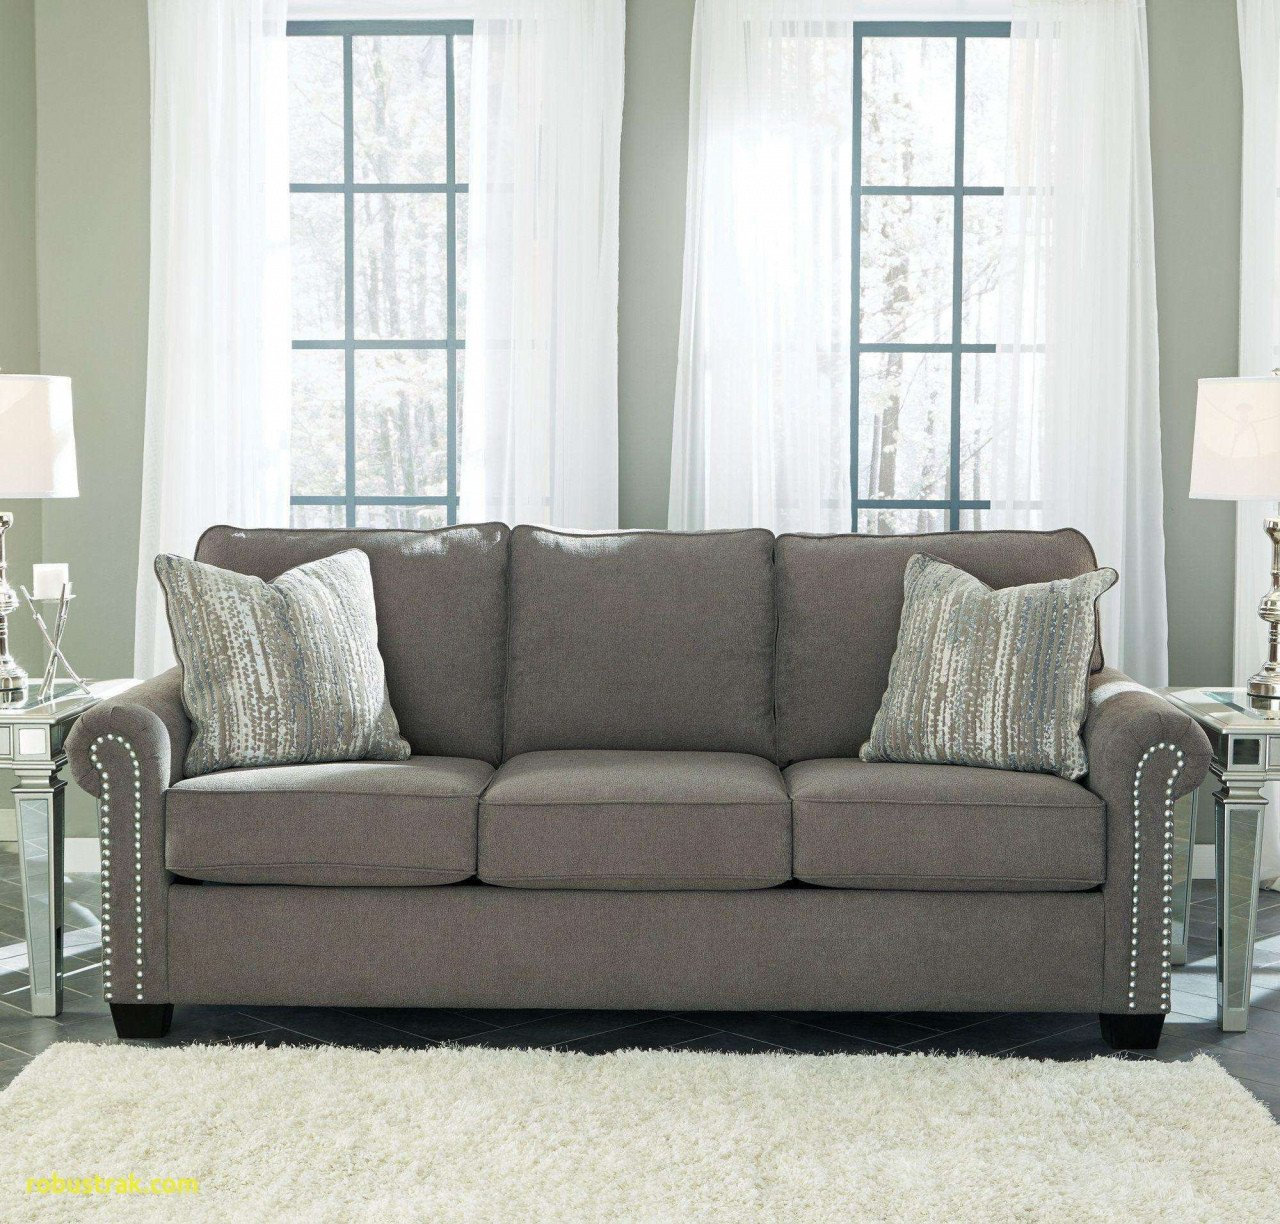 Gray and Gold Bedroom New Gray Couch Living Room — Procura Home Blog